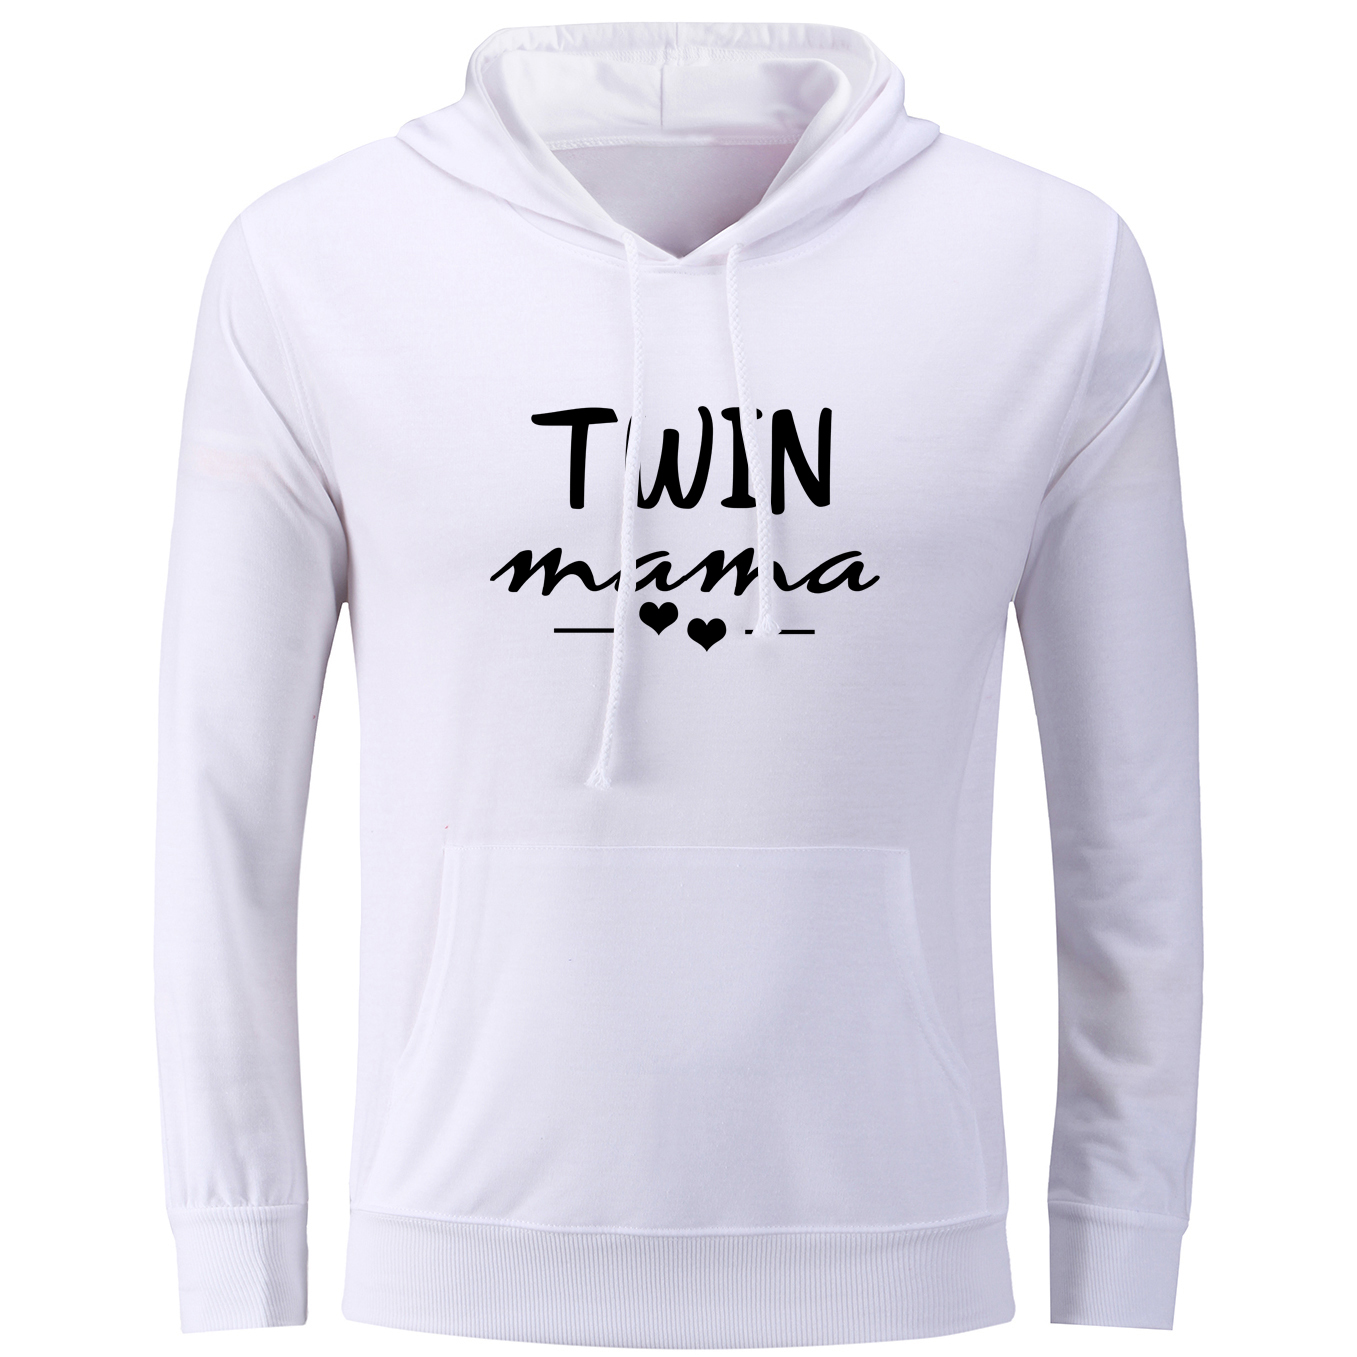 Funny Twin Mama Design Print Hoodies Women Autumn Early Winter Pullovers Sweatshirts for Lady Femme Cotton Hoody Tops Streetwear